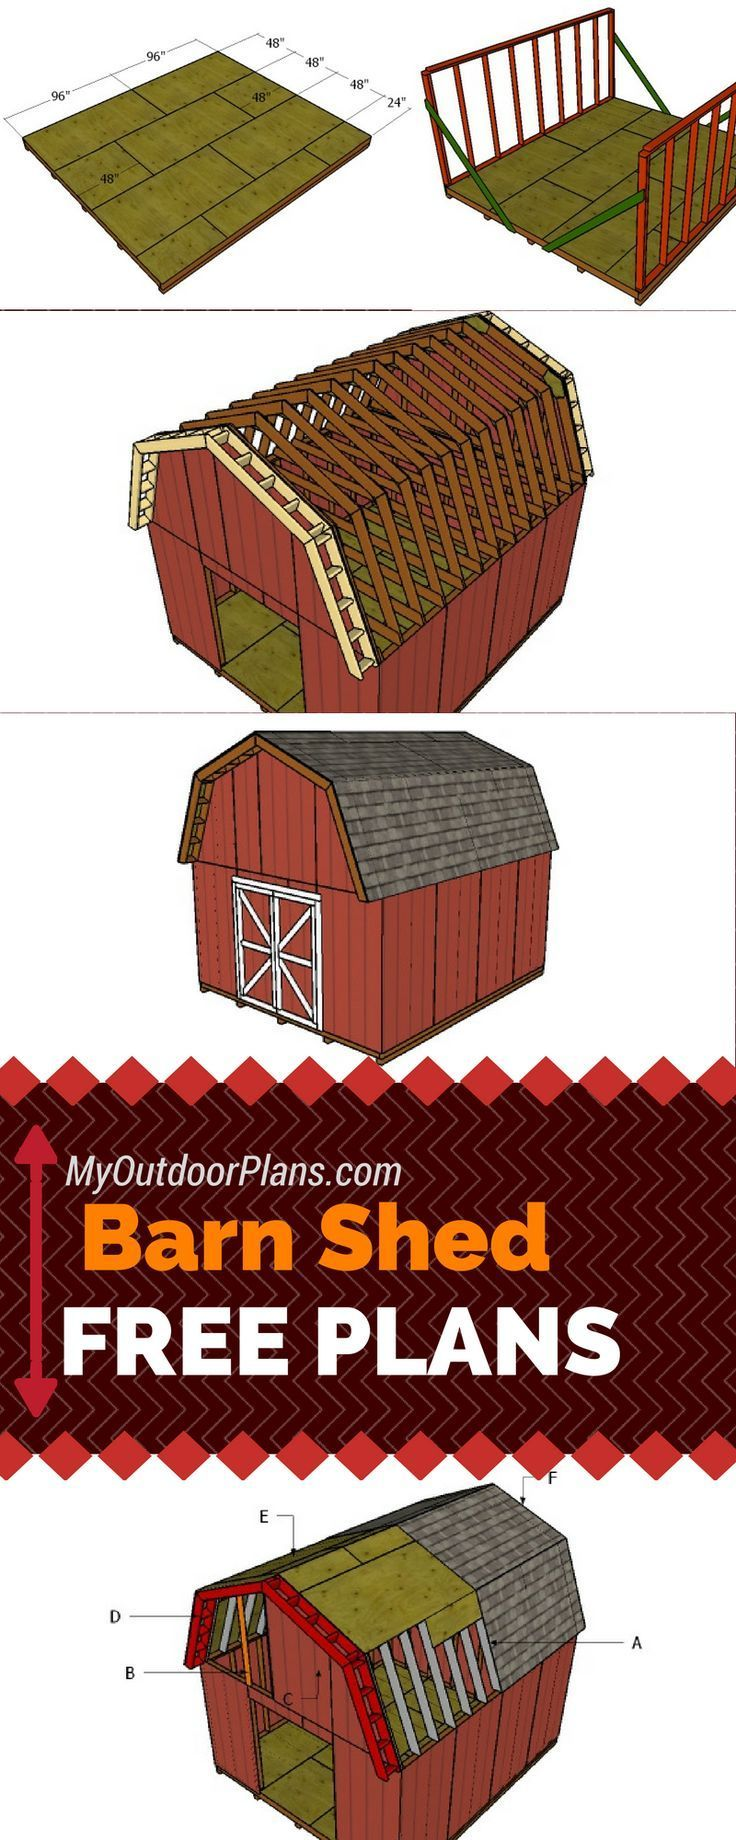 Free barn shed plans learn how to build a 14x16 gambrel shed with my free